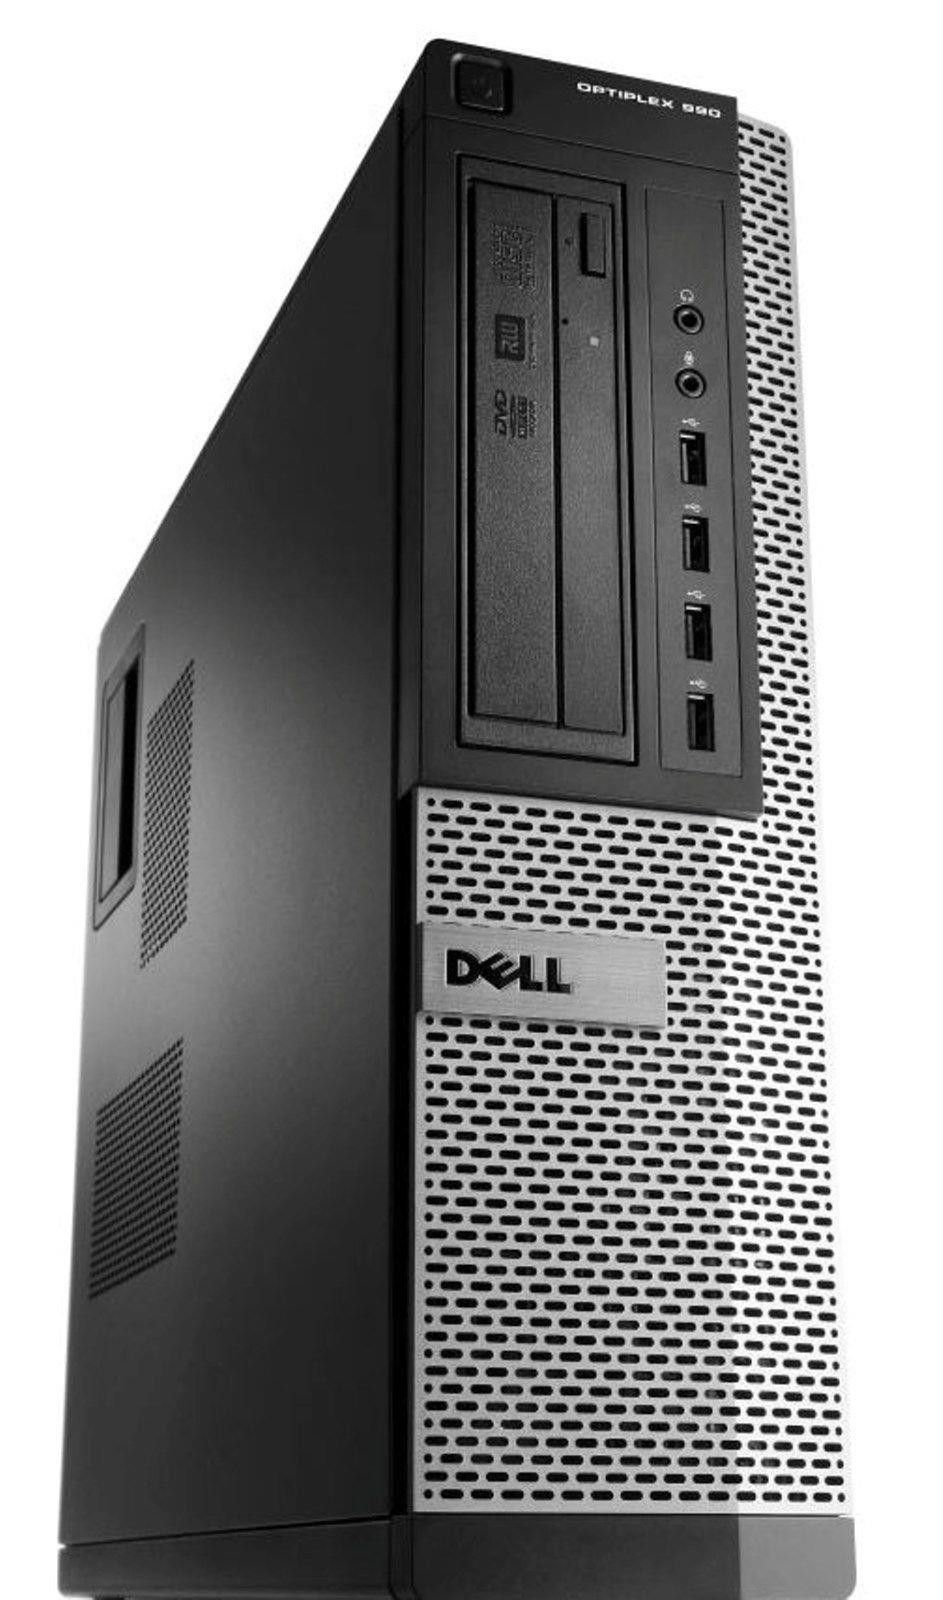 Dell Optiplex 990 Intel i5 Quad Core 3300 MHz 4GB Mem 160GB HDD